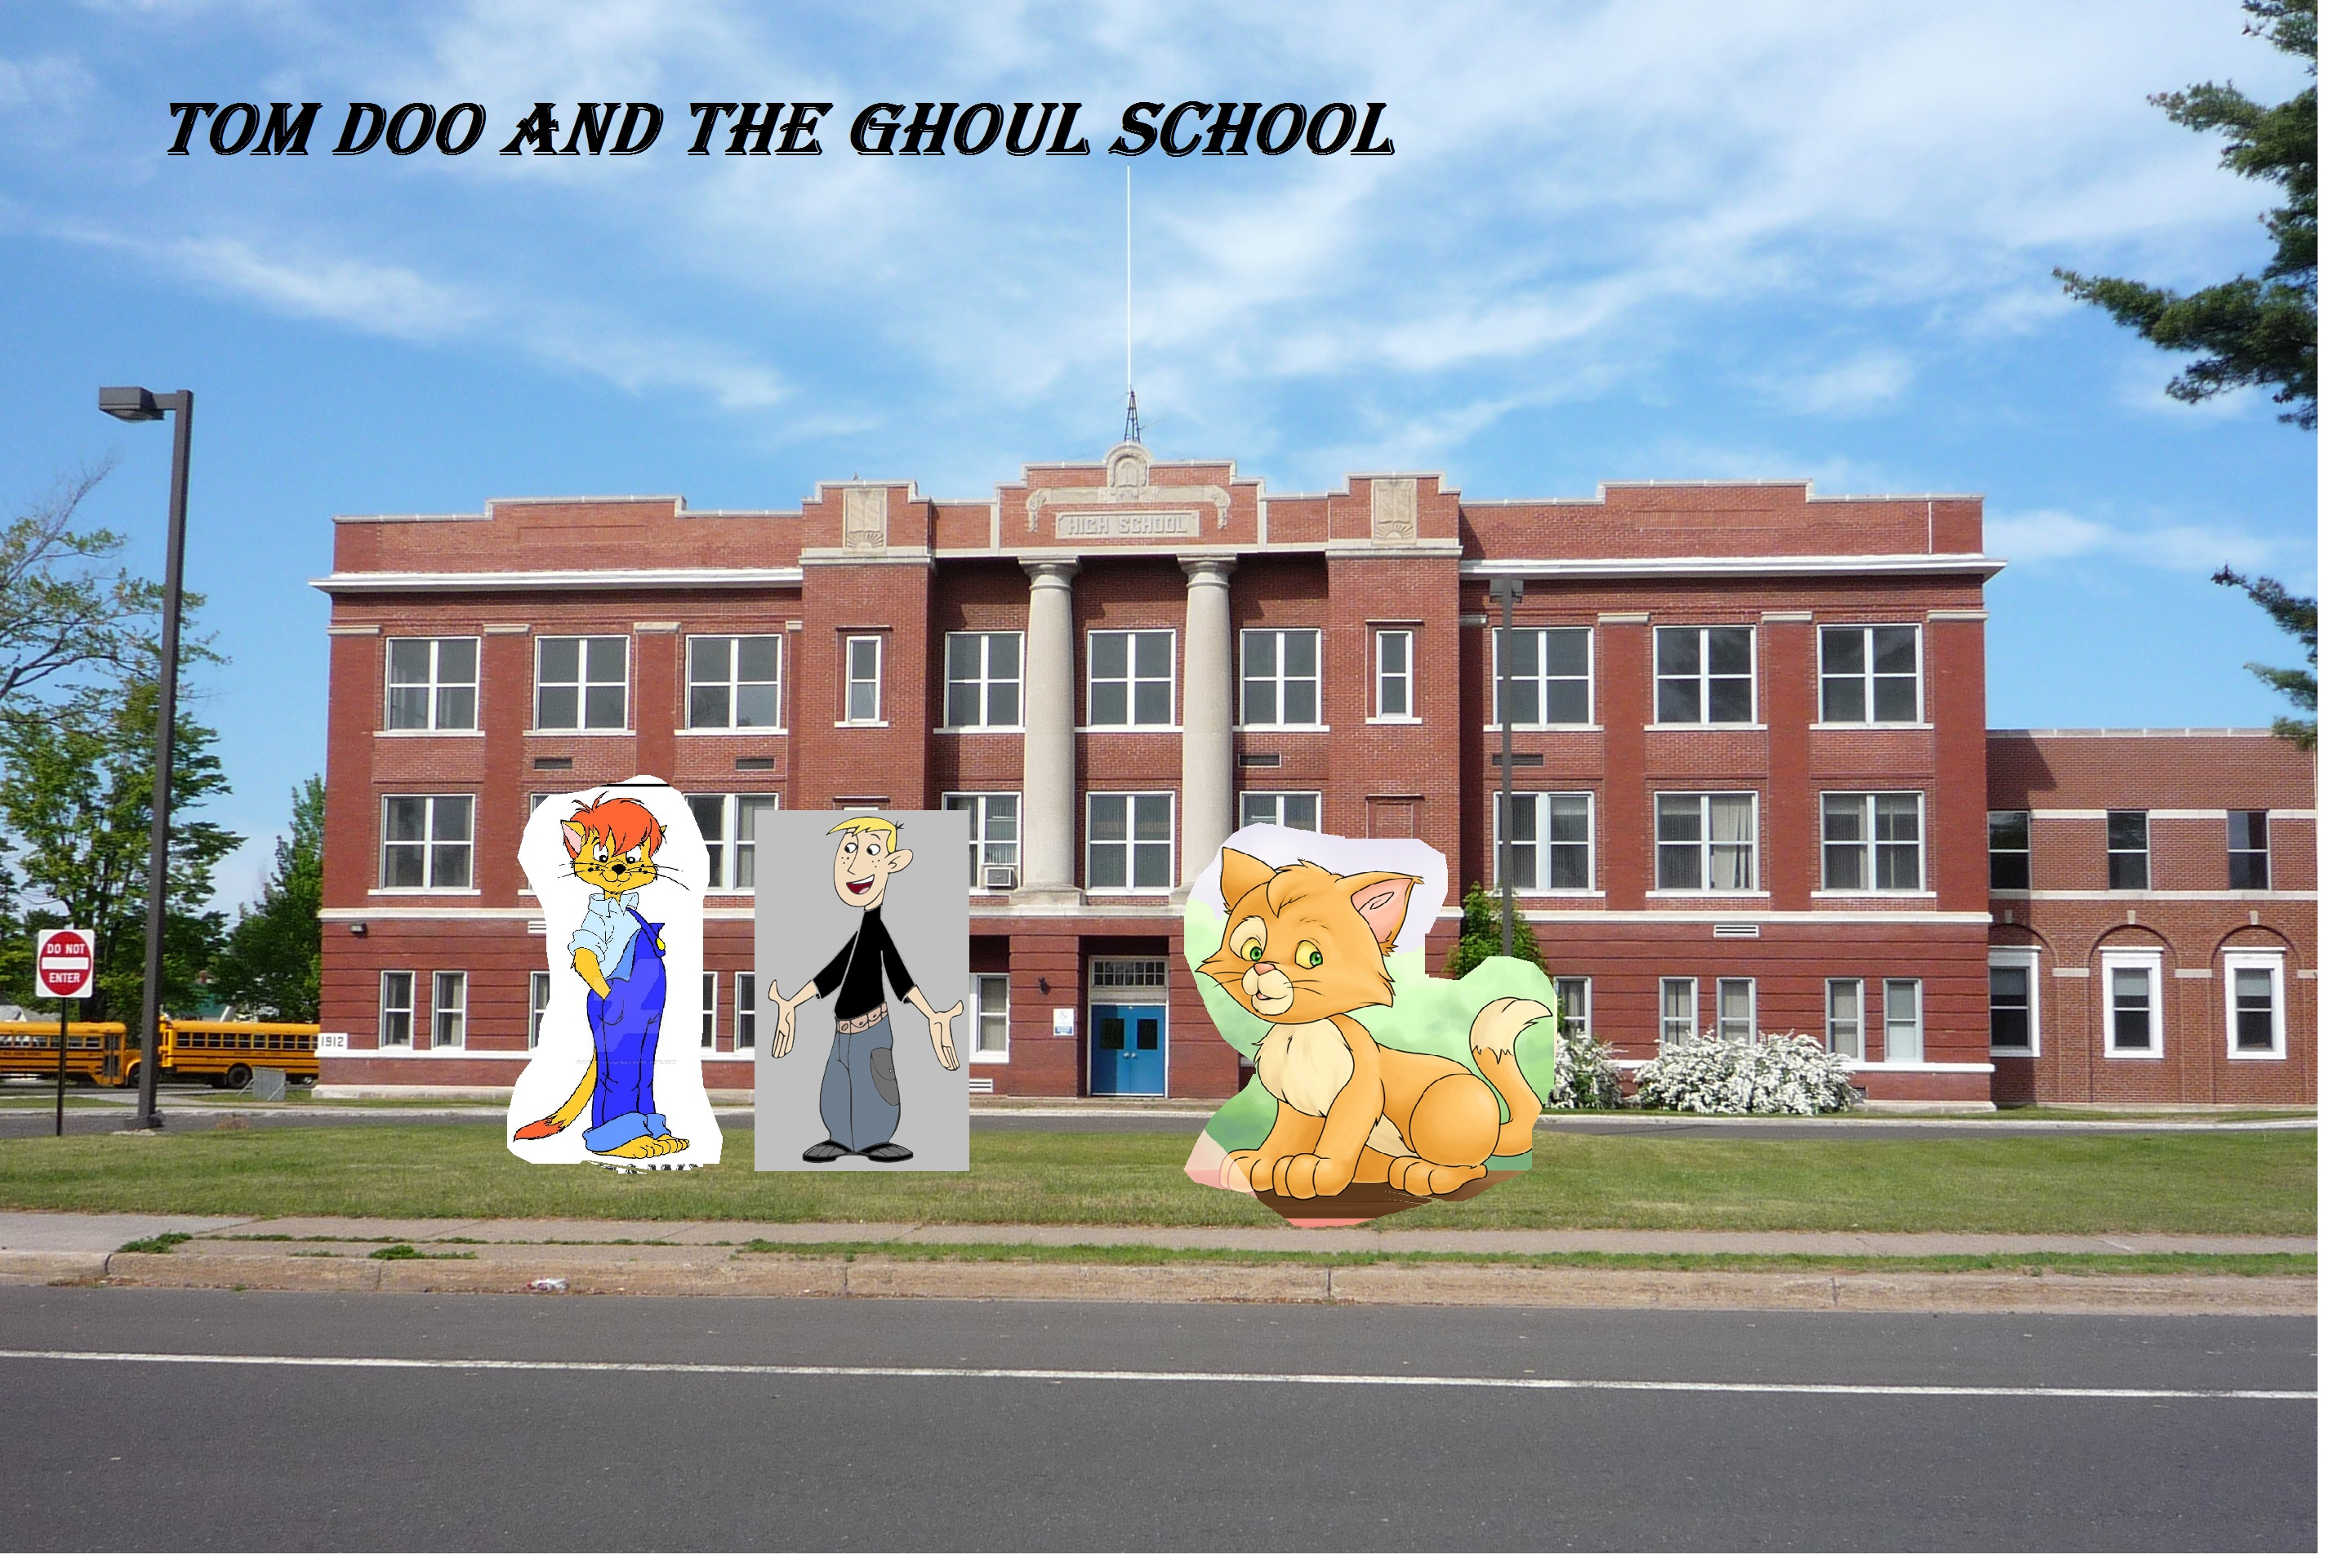 Tom Doo and the Ghoul School